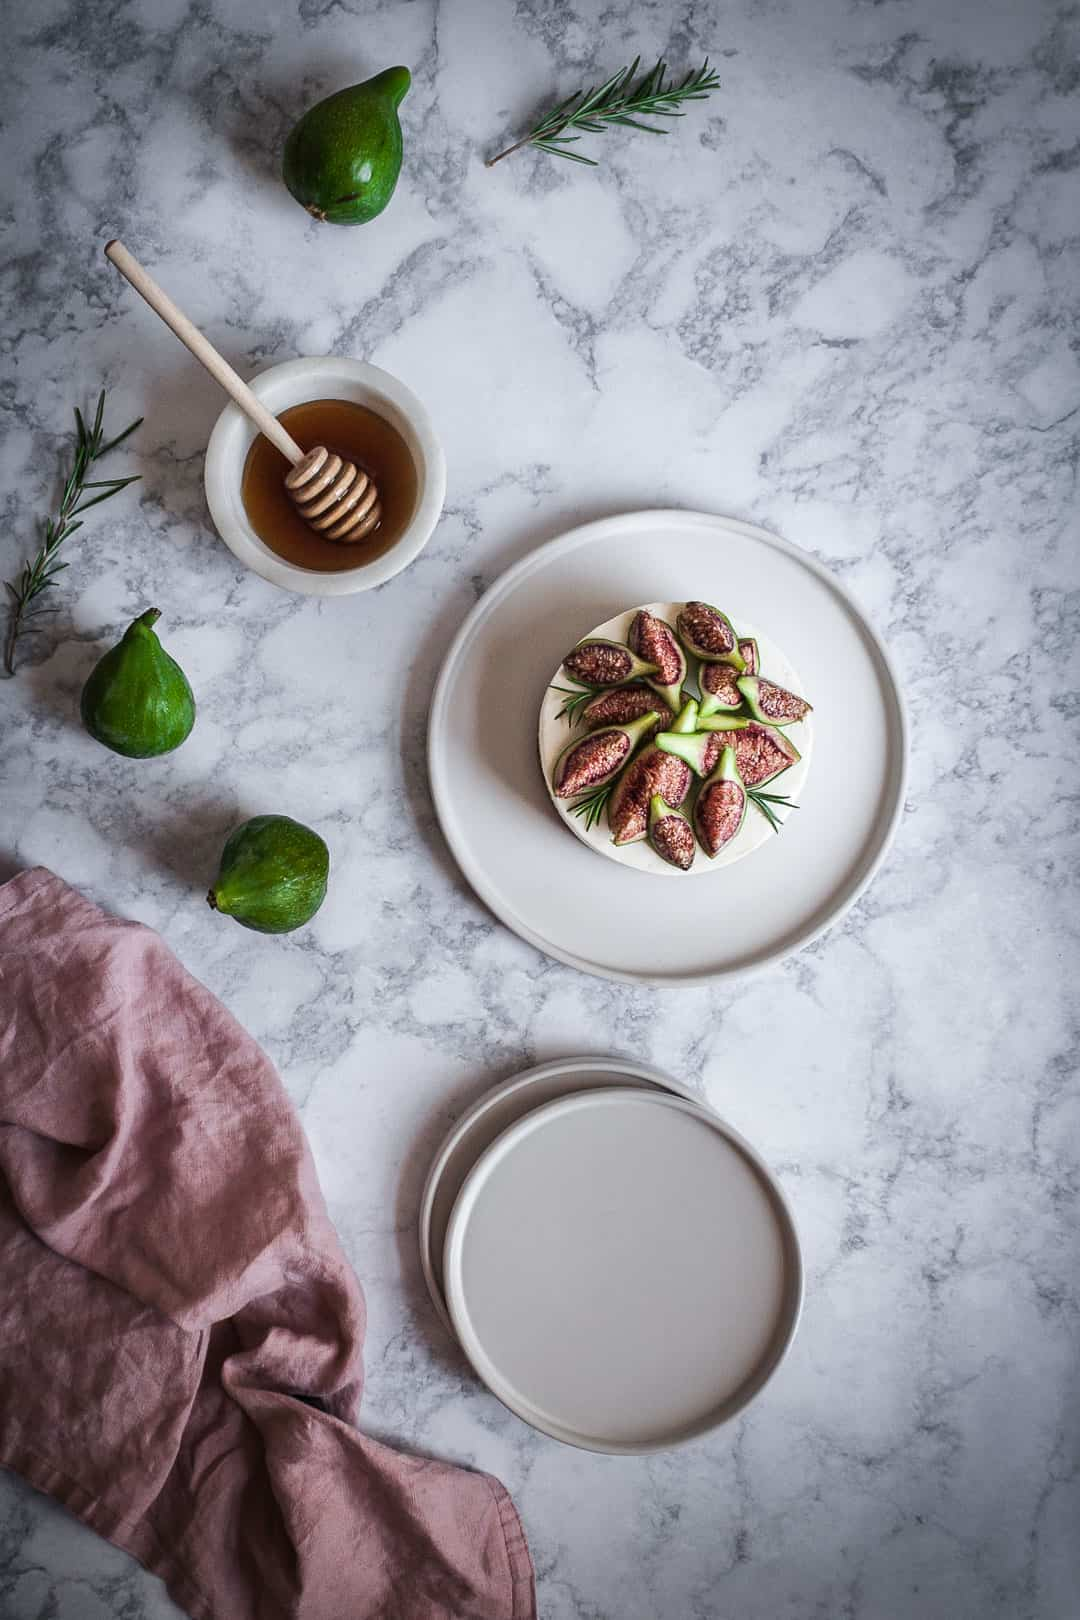 Honey orange cheesecake with figs and rosemary almond crust on a marble backdrop - birds eye view with white plates, green figs and a bowl of honey